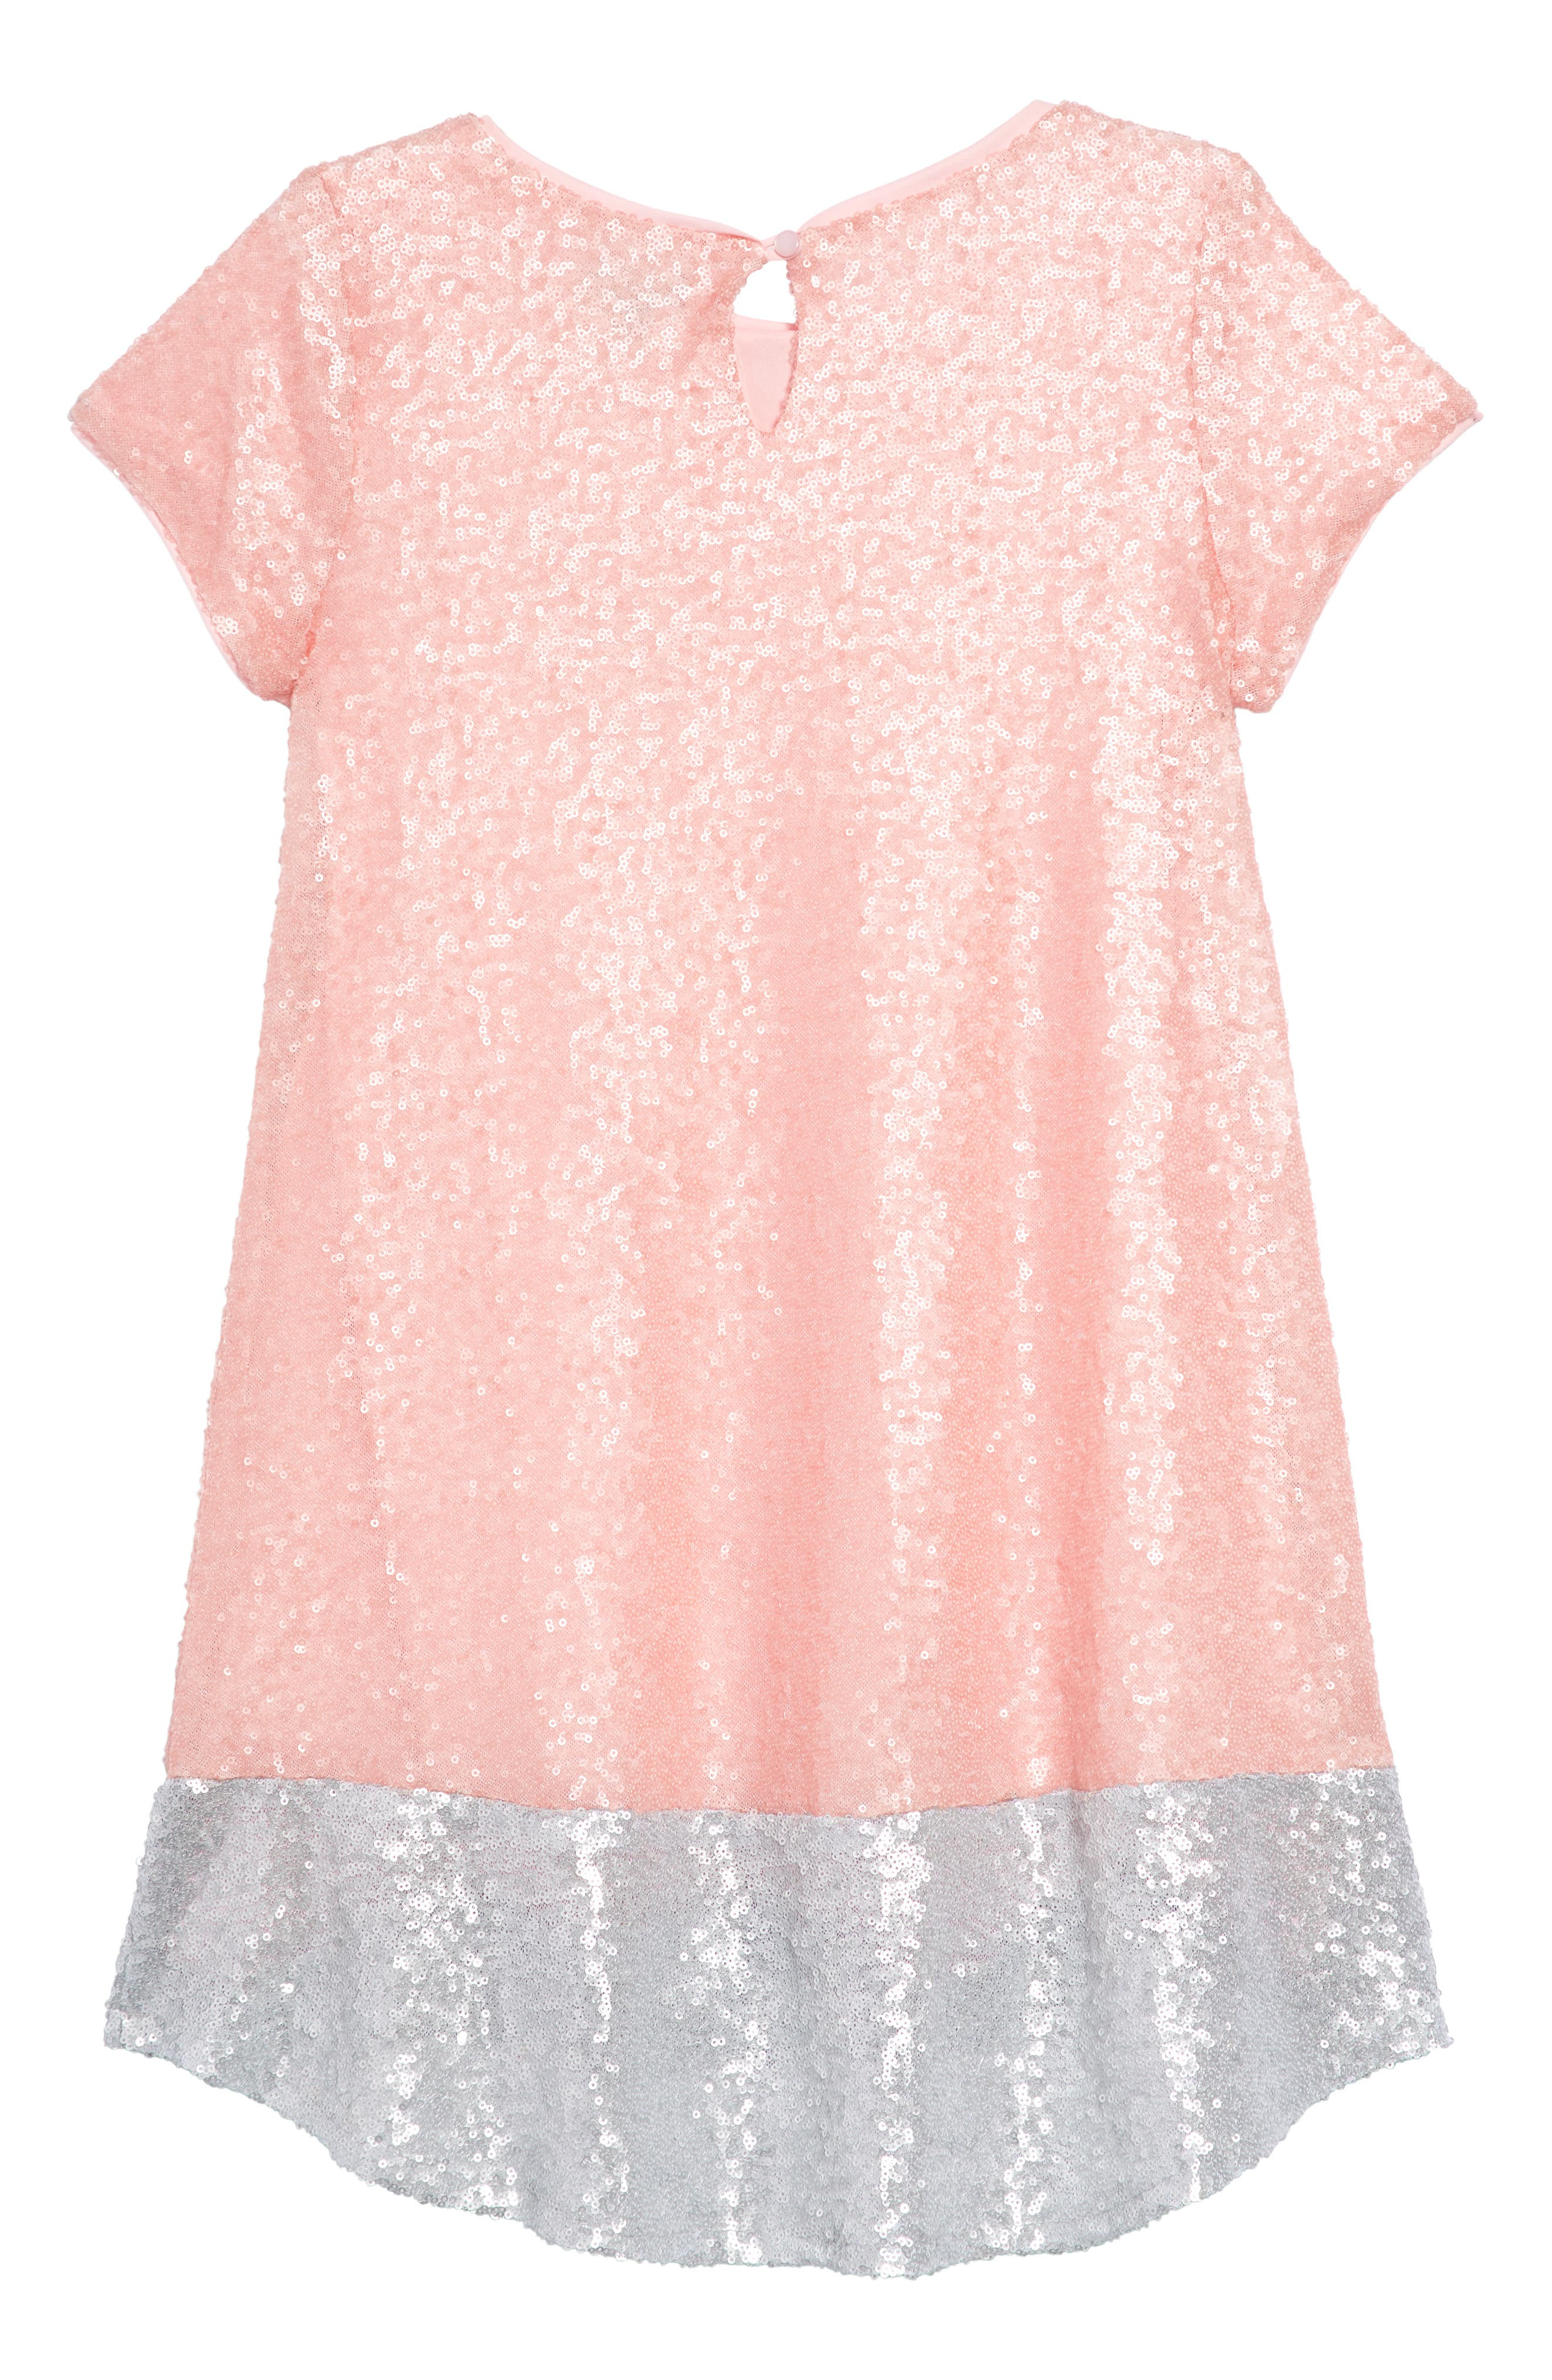 Sequin Shift Dress,                             Alternate thumbnail 2, color,                             Pink/ Silver